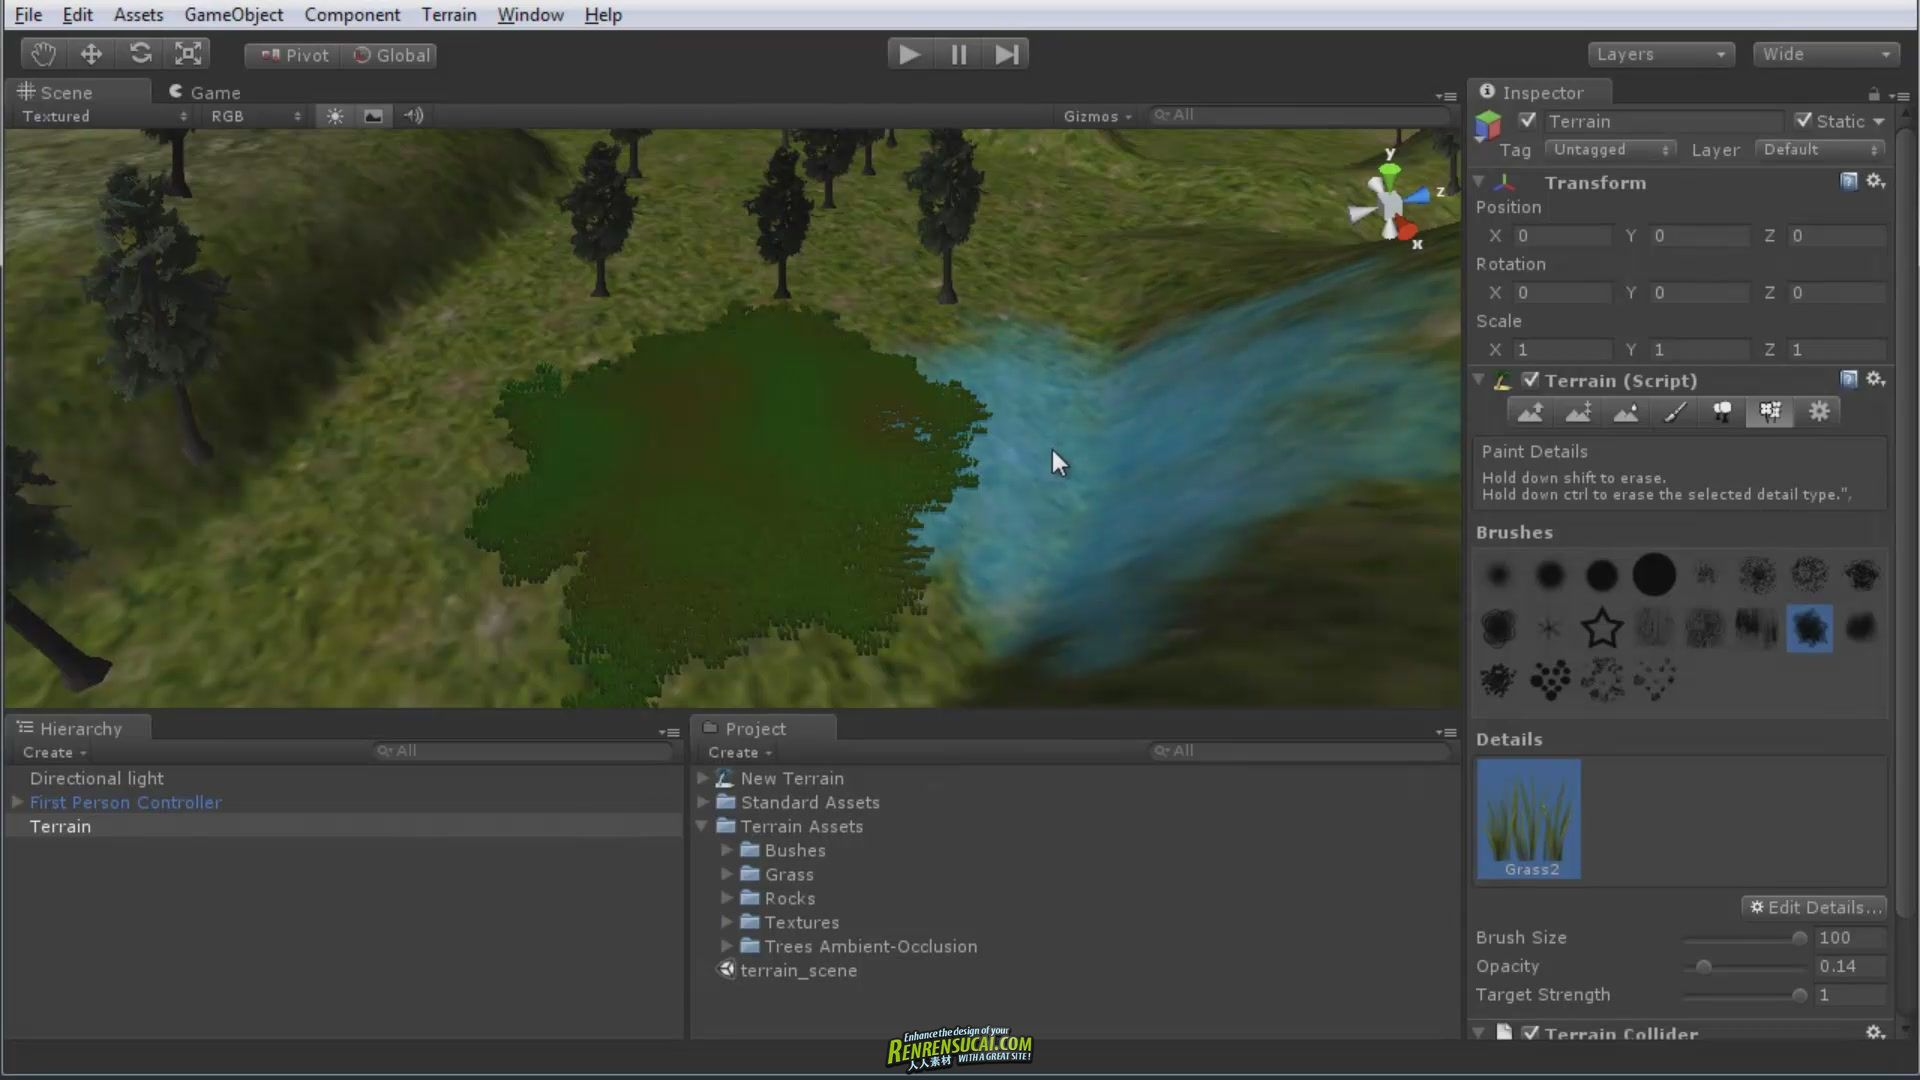 《Unity材料与地形场景制作教程》3DMotive Unity 3.5 Assets Materials and Terrain